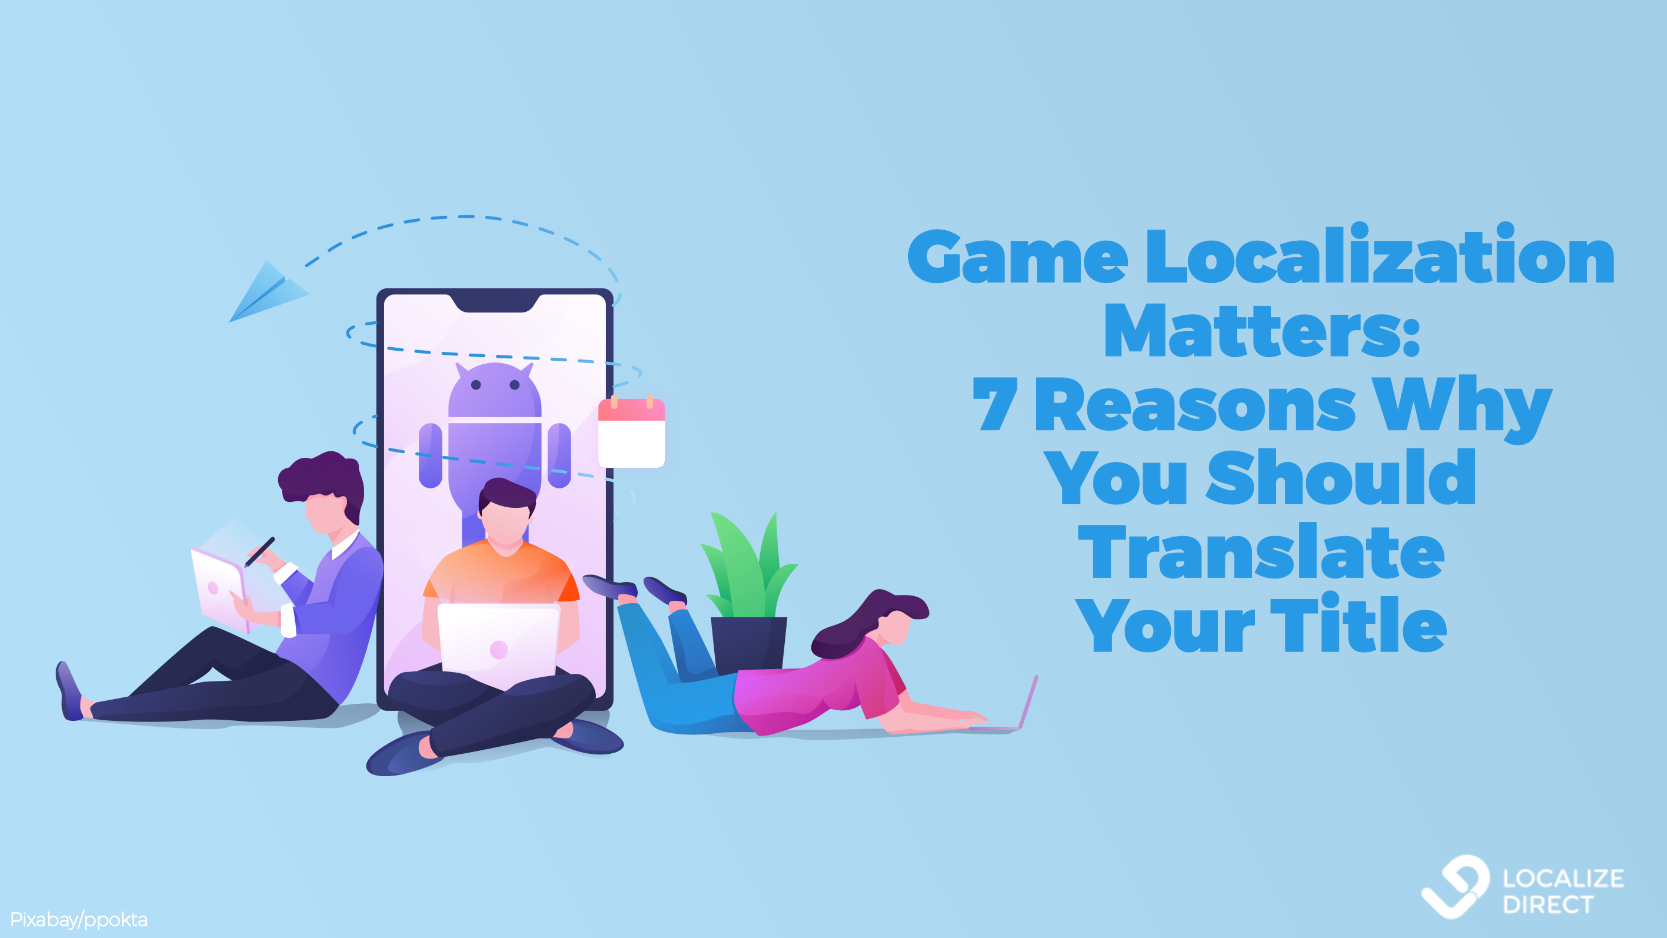 Game Localization Matters: 7 Reasons Why You Should Localize